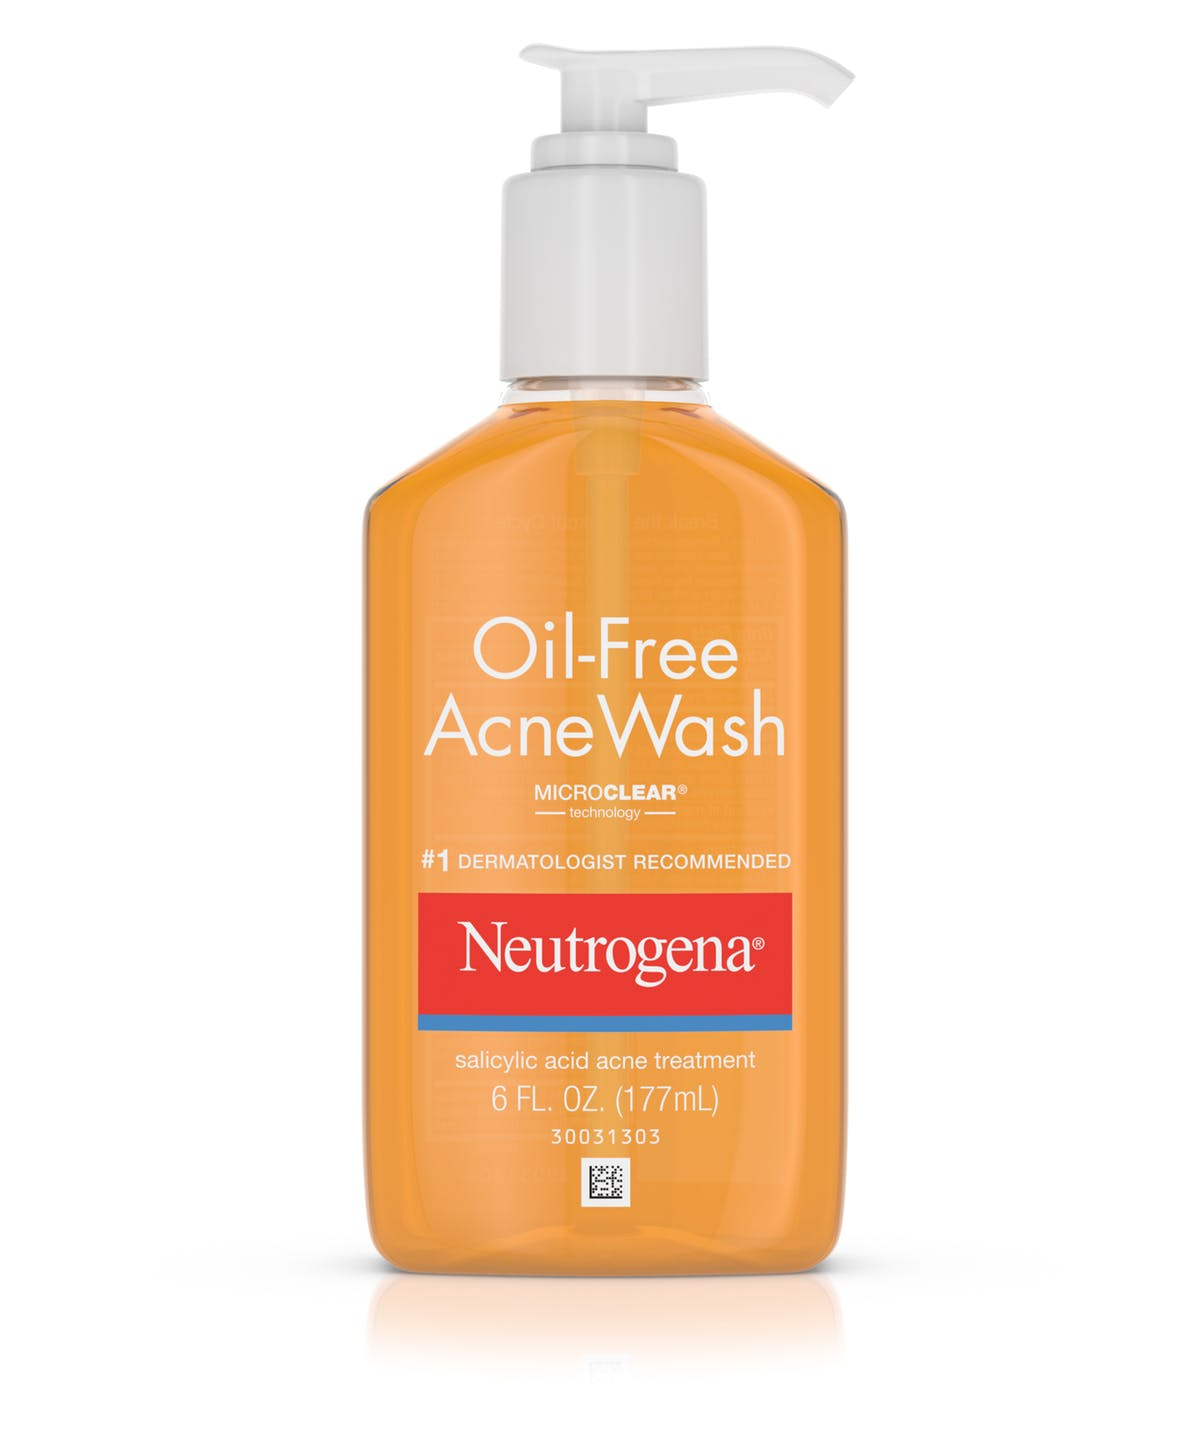 Best Face Washes For Treating And Getting Rid Of Acne Scars Neutrogena Oil Free Acne Fighting Face Wash